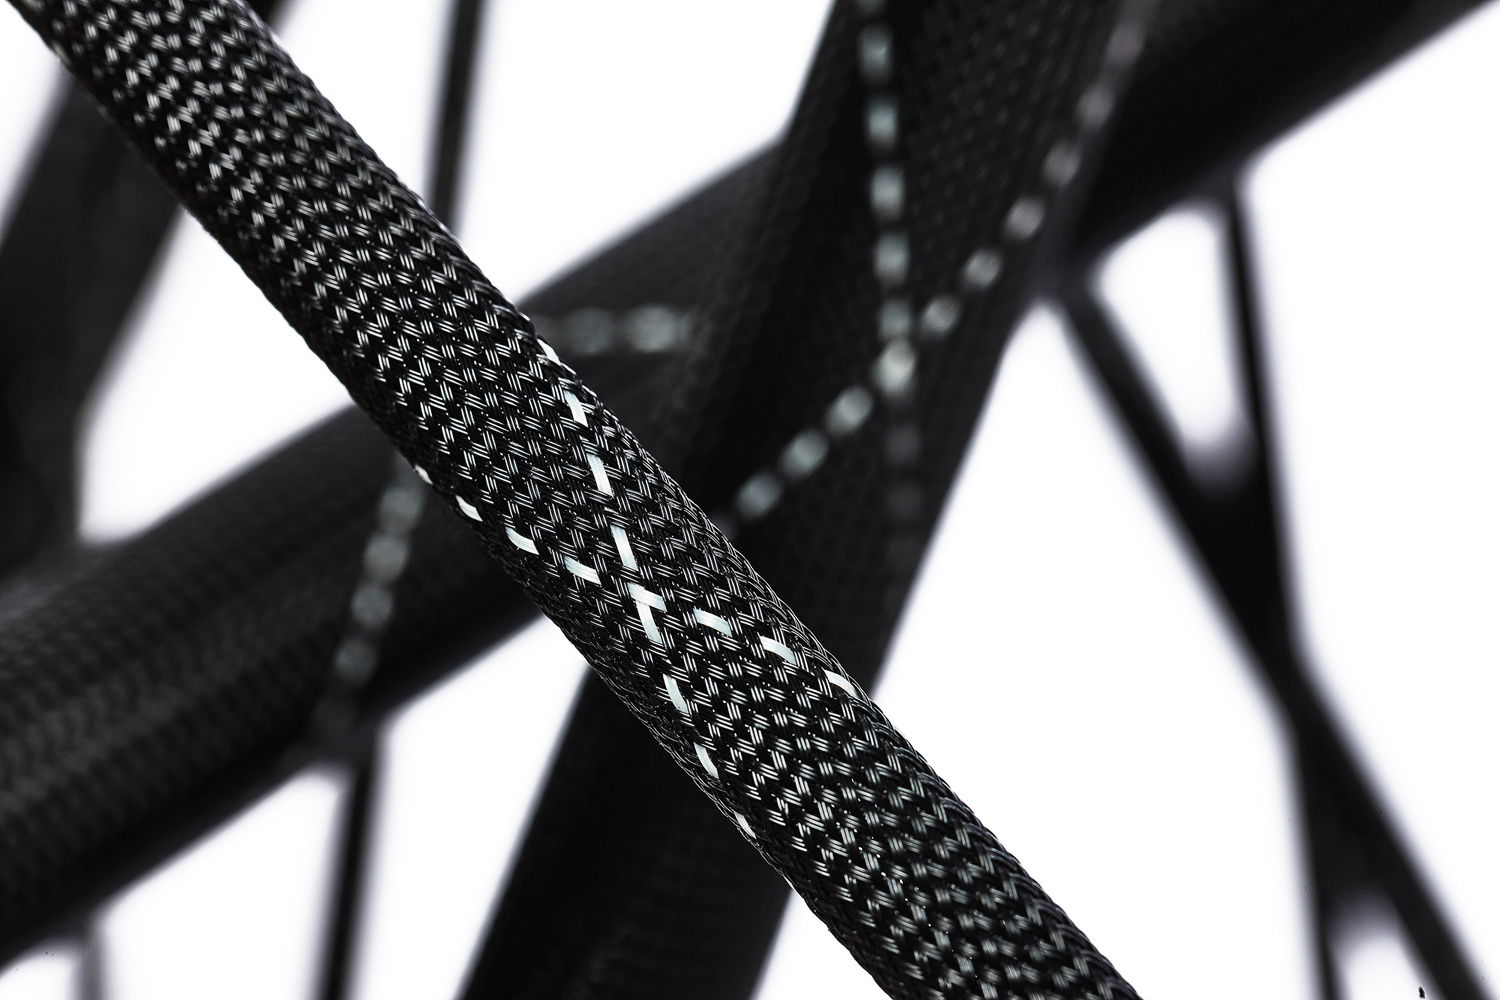 Product Photography of braided tubes for auto manufacturer by Rick Lohre